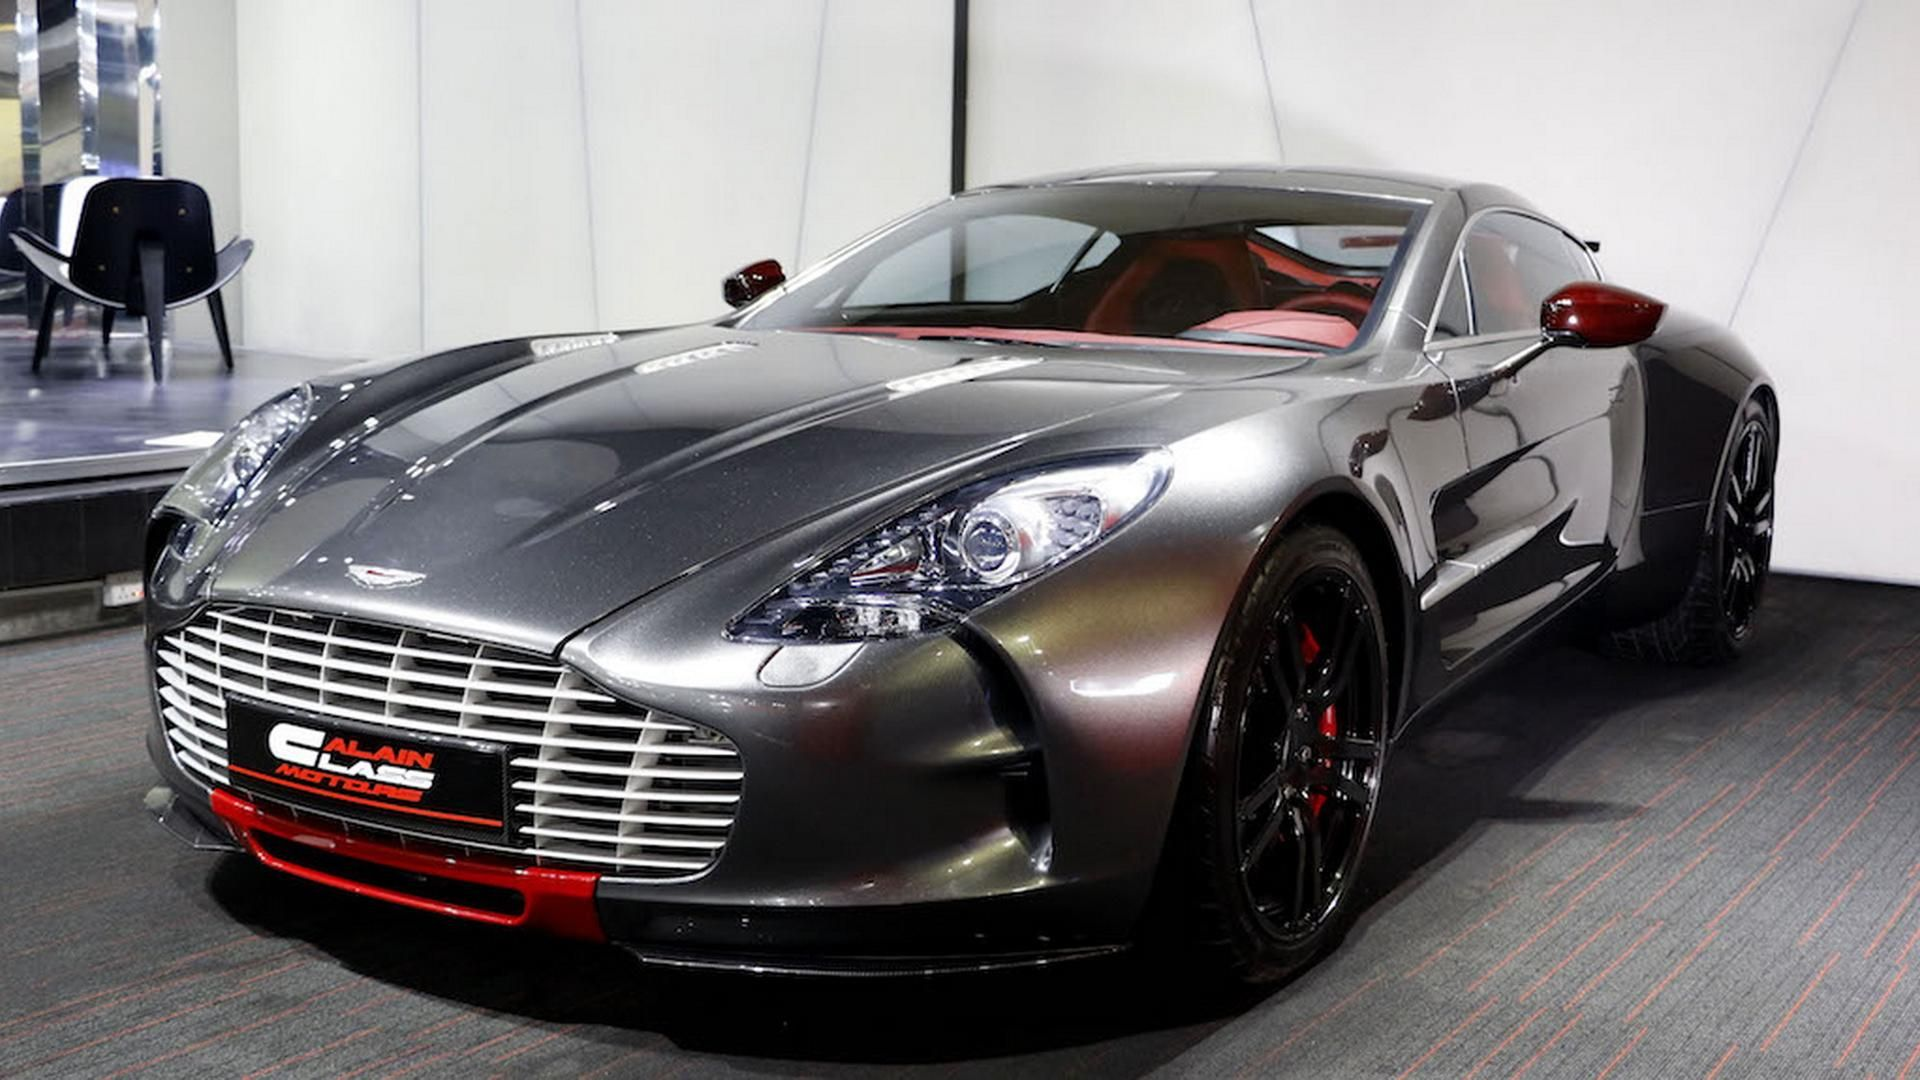 aston martin one-77 q-series, one of the only seven cars ever